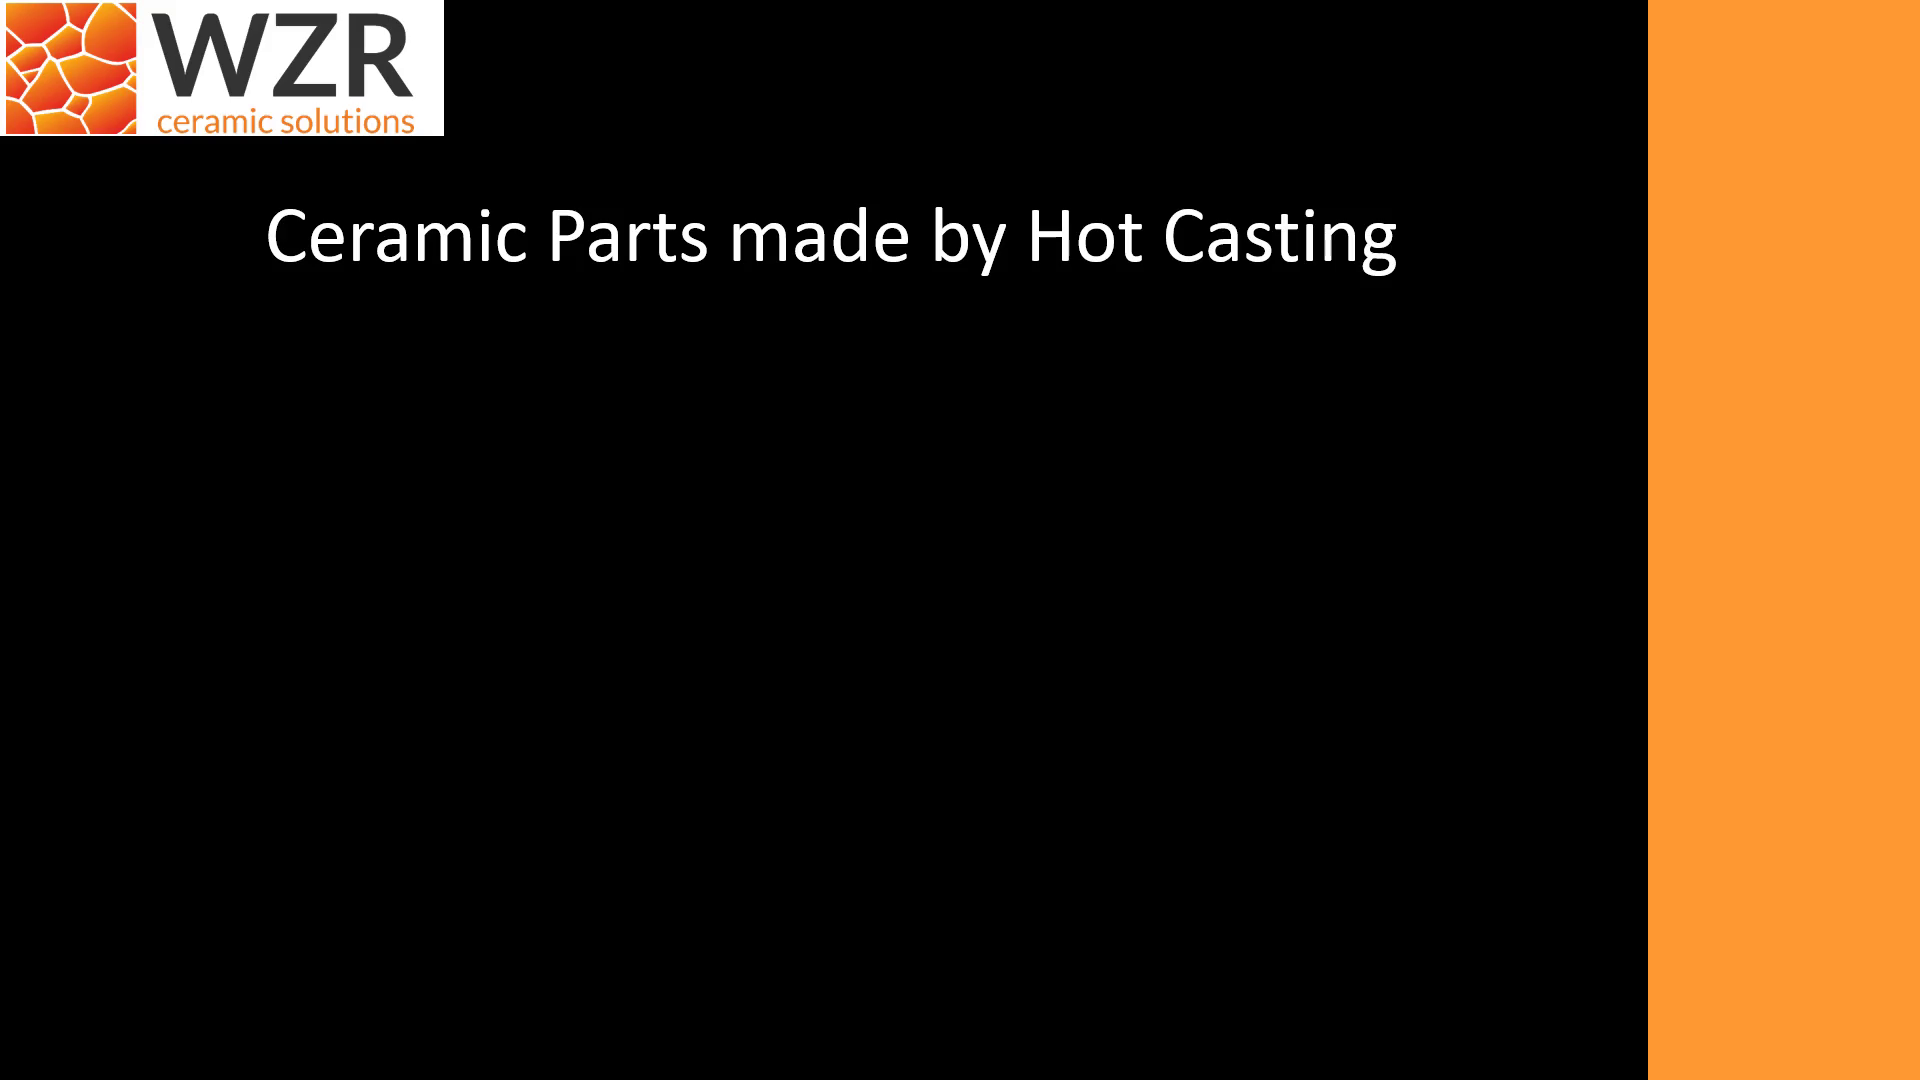 Ceramic Parts made by Hot Casting